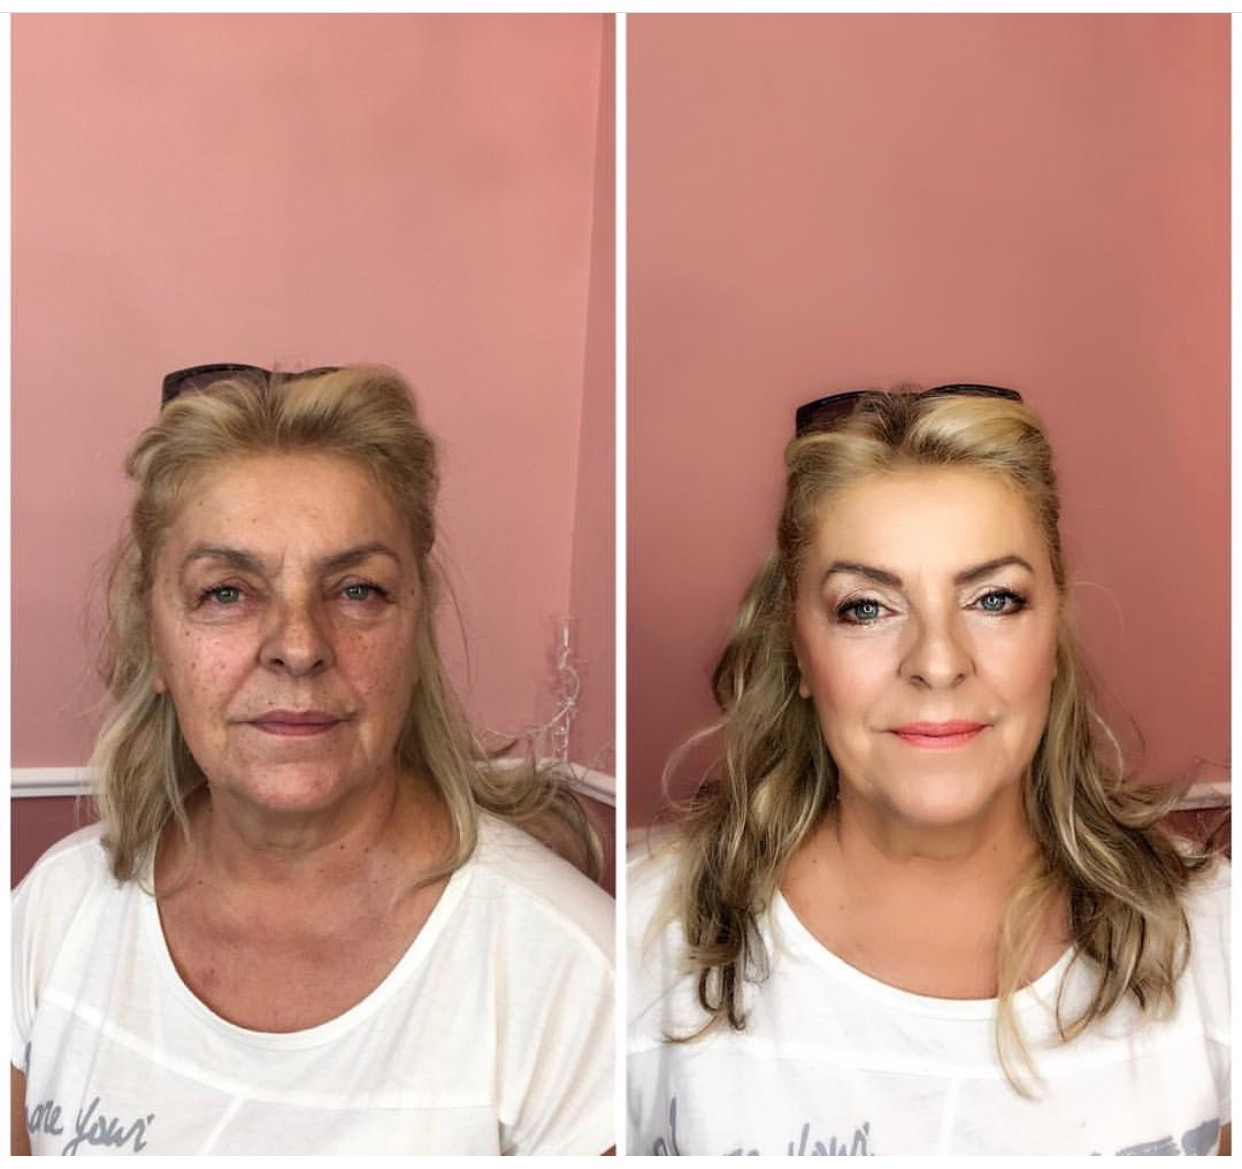 makeup transformations from bare face to full face